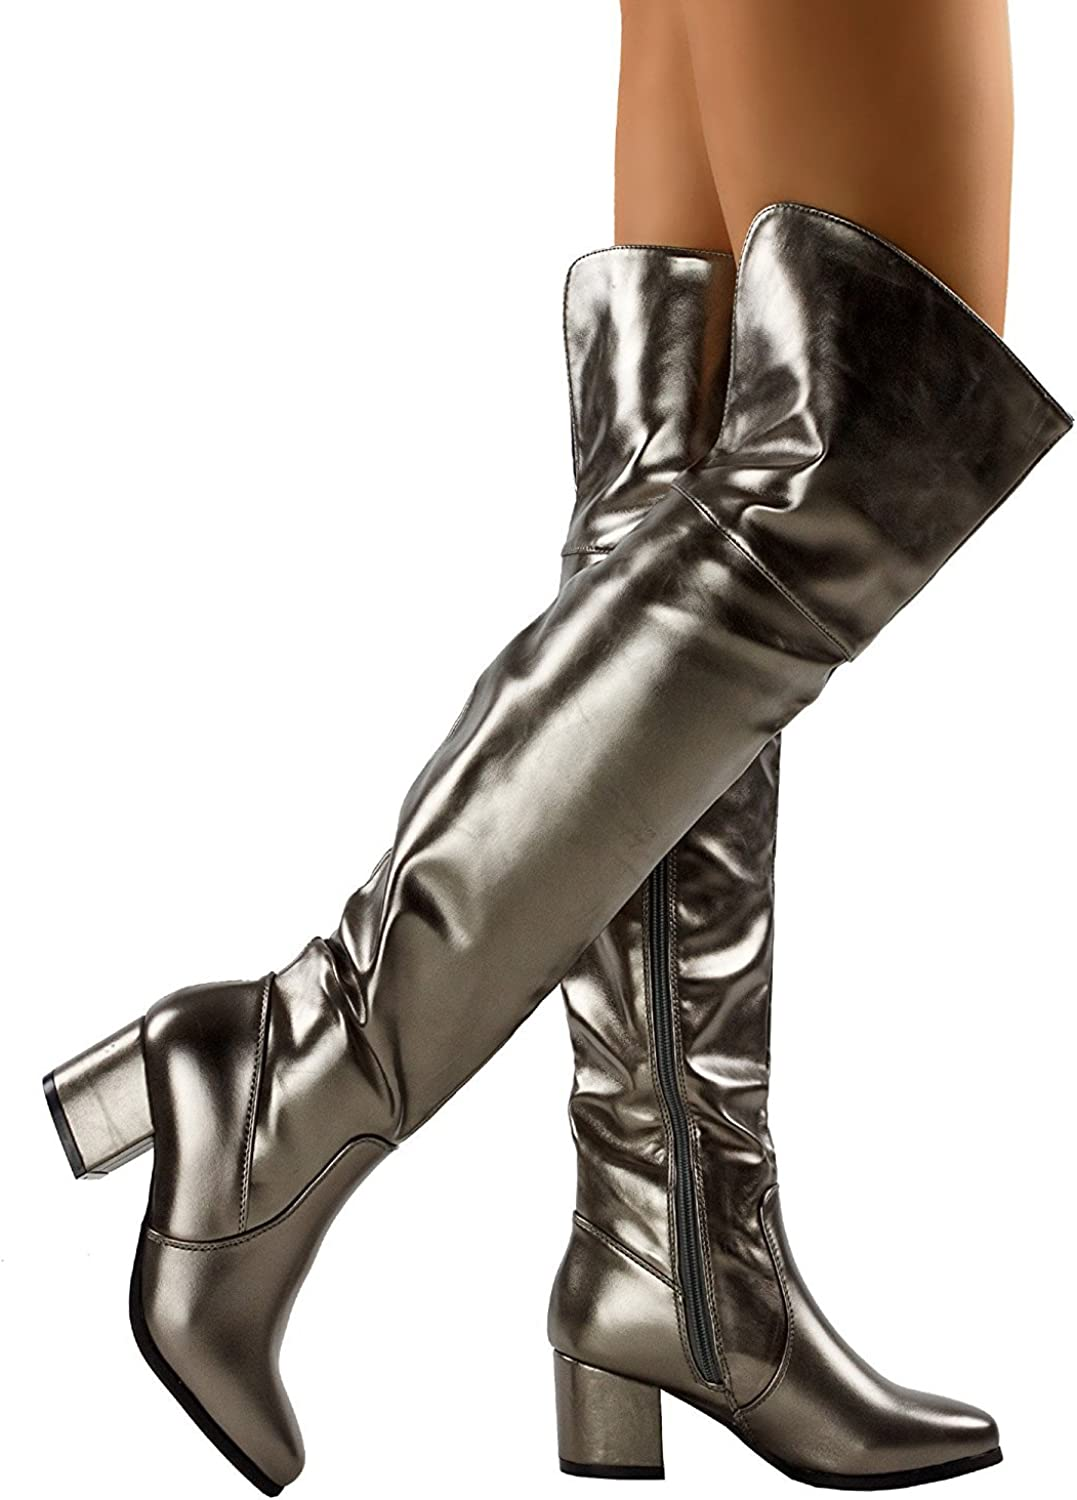 ShoBeautiful Women Thigh High Riding Boot Trendy Cuff Almond Toe Chunky Block Heel Over The Knee Boots by (TM)